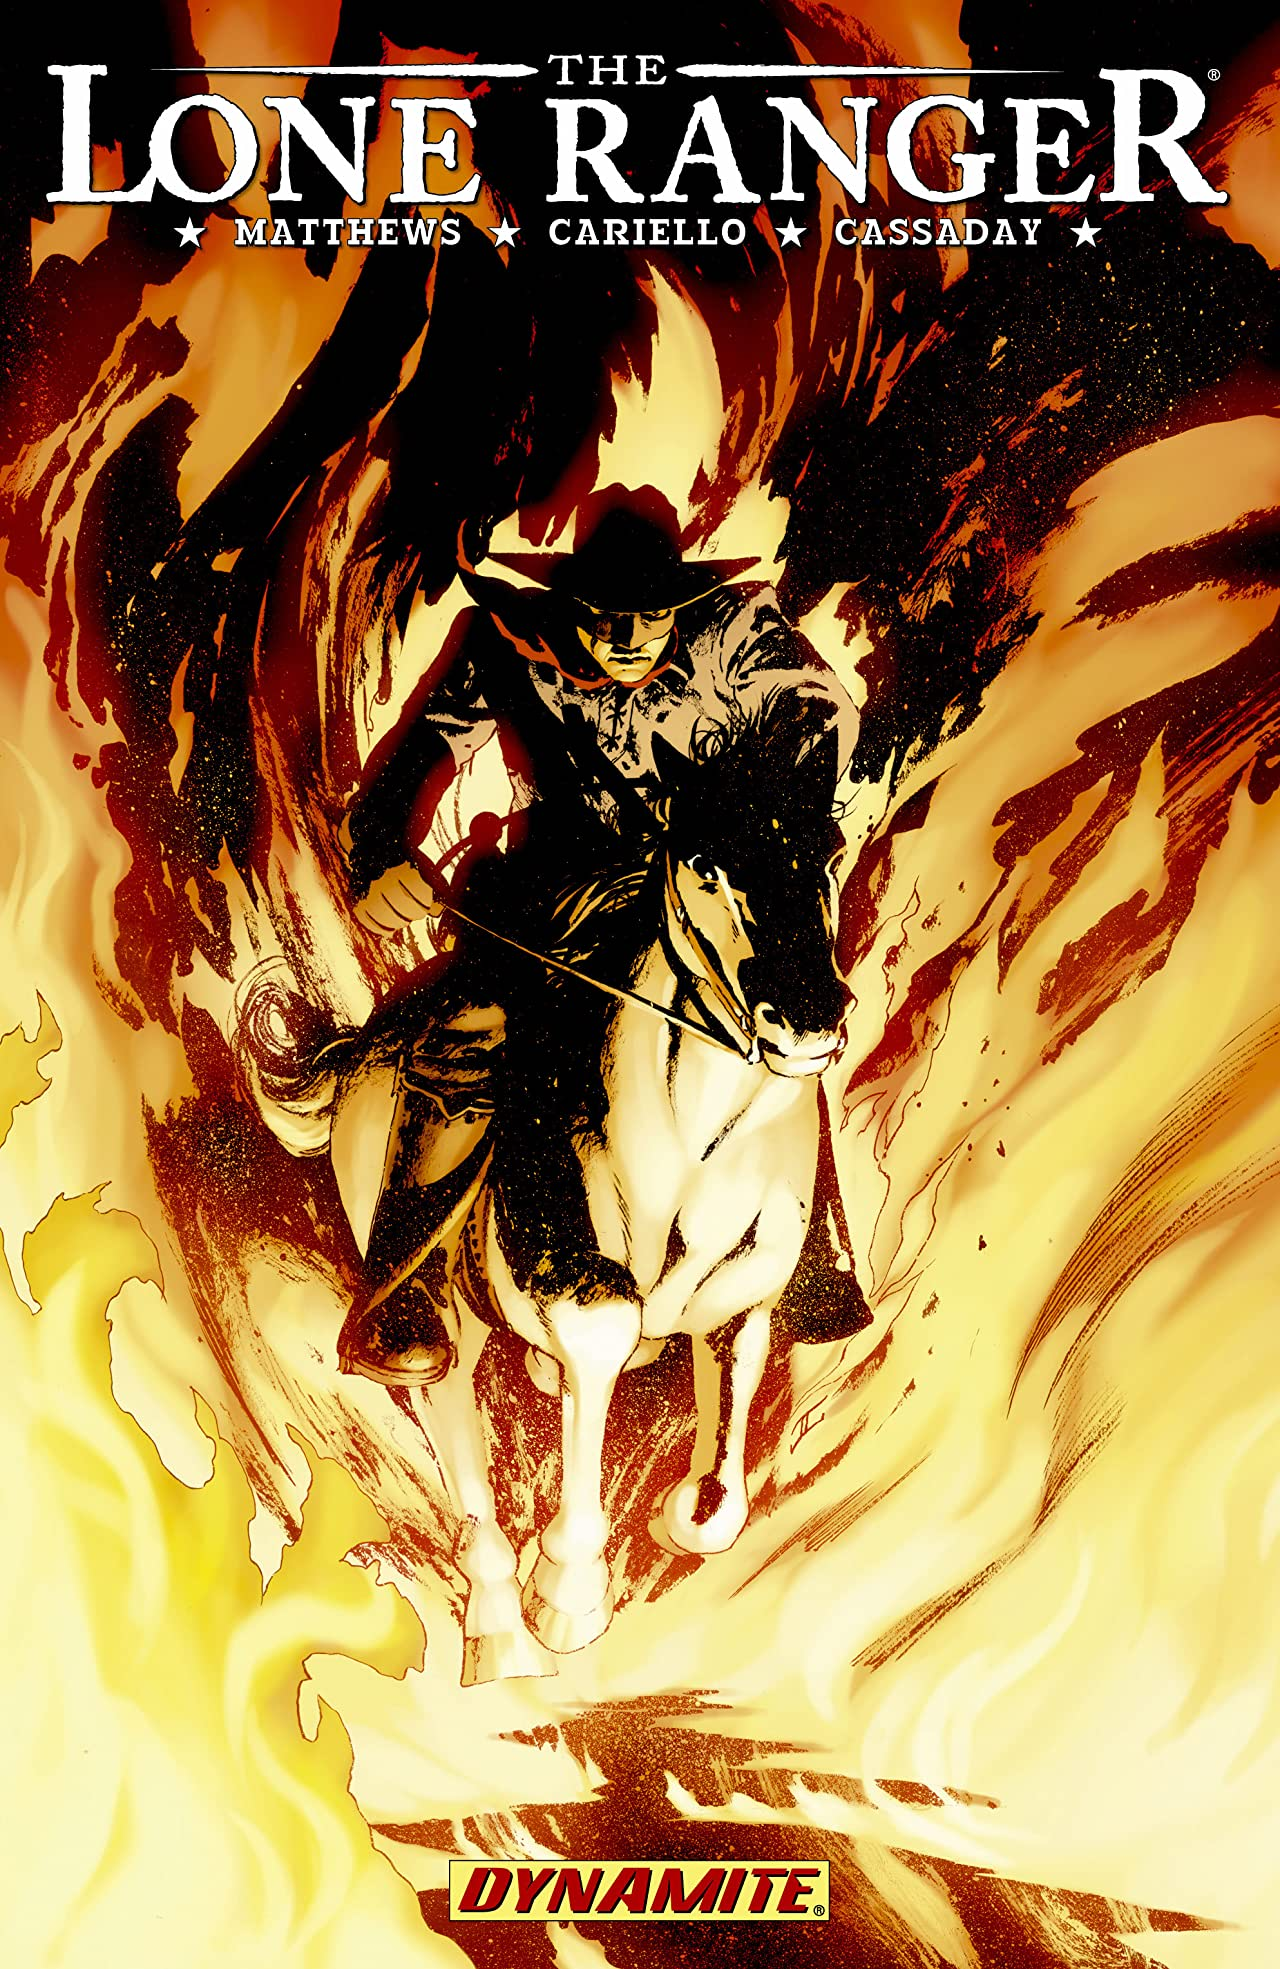 The Lone Ranger Vol. 3: Scorched Earth